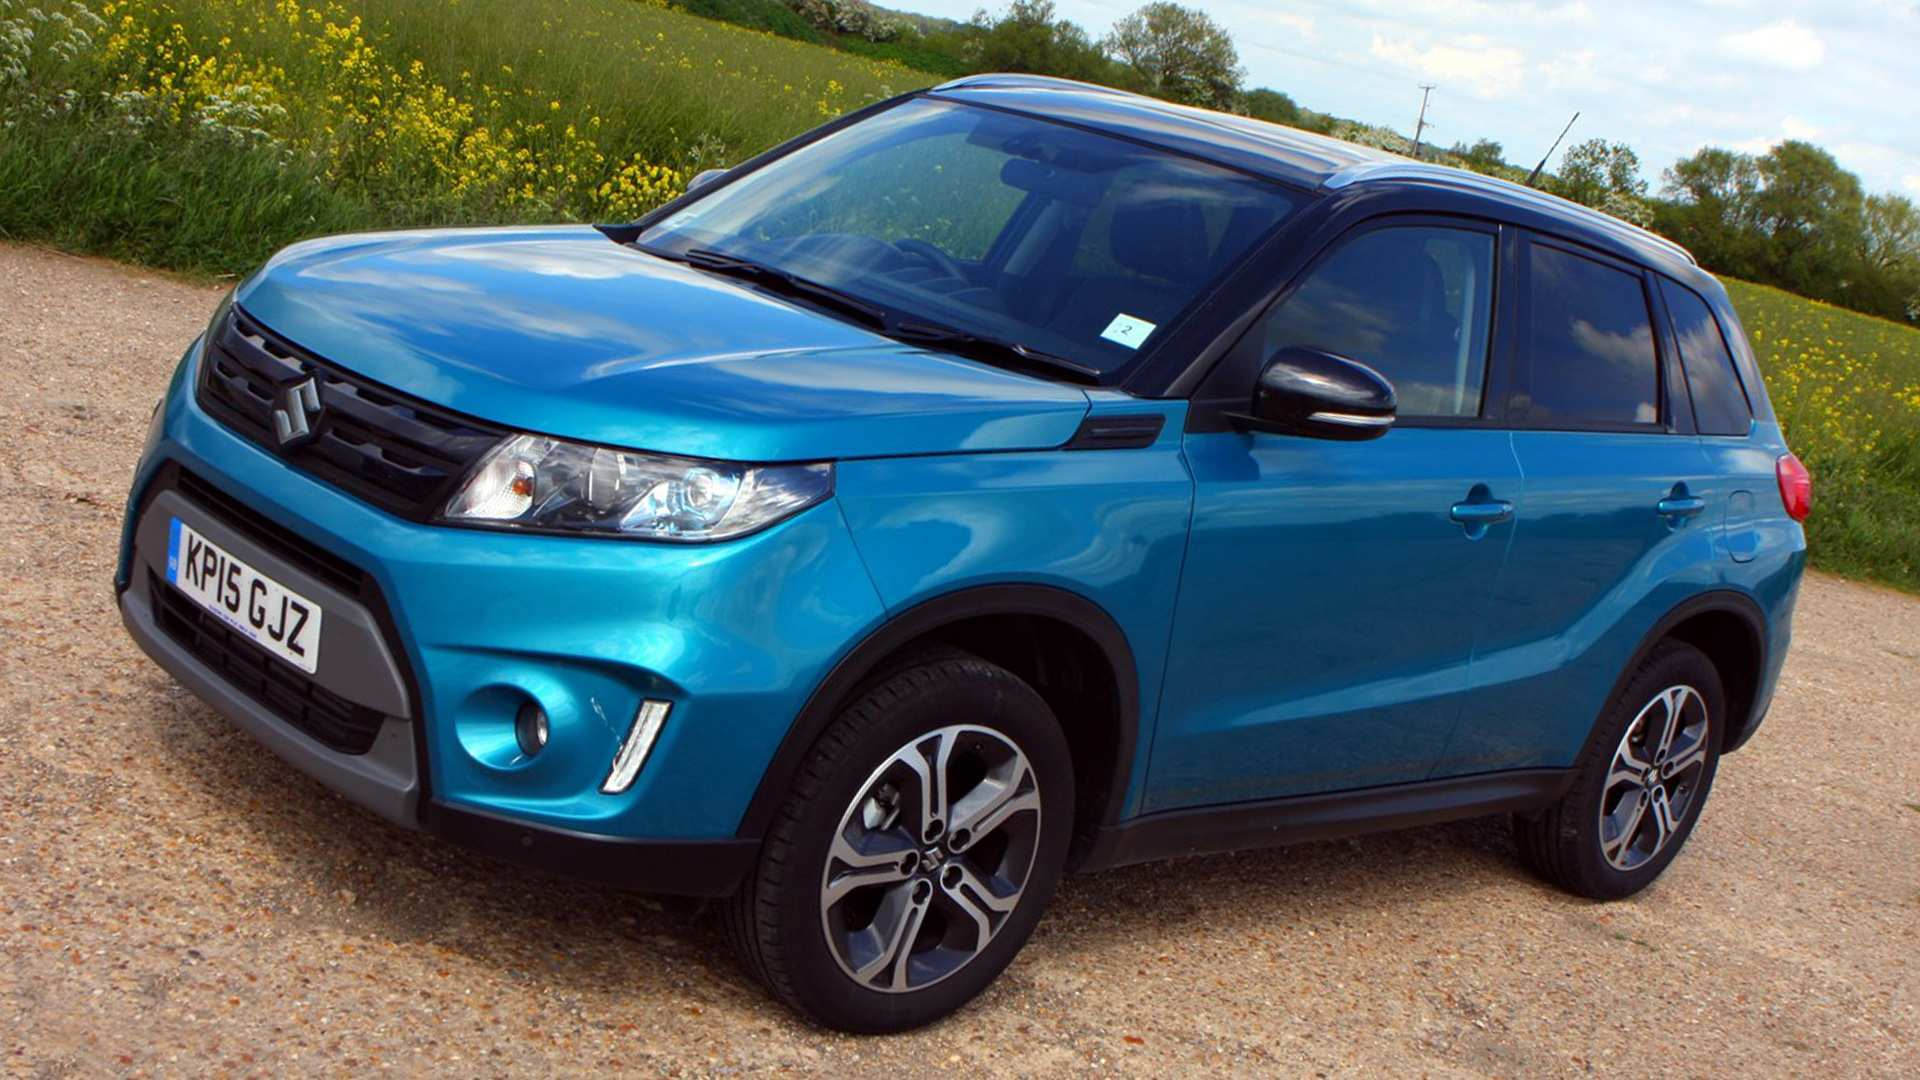 37 New 2020 Suzuki Grand Vitara Preview Engine